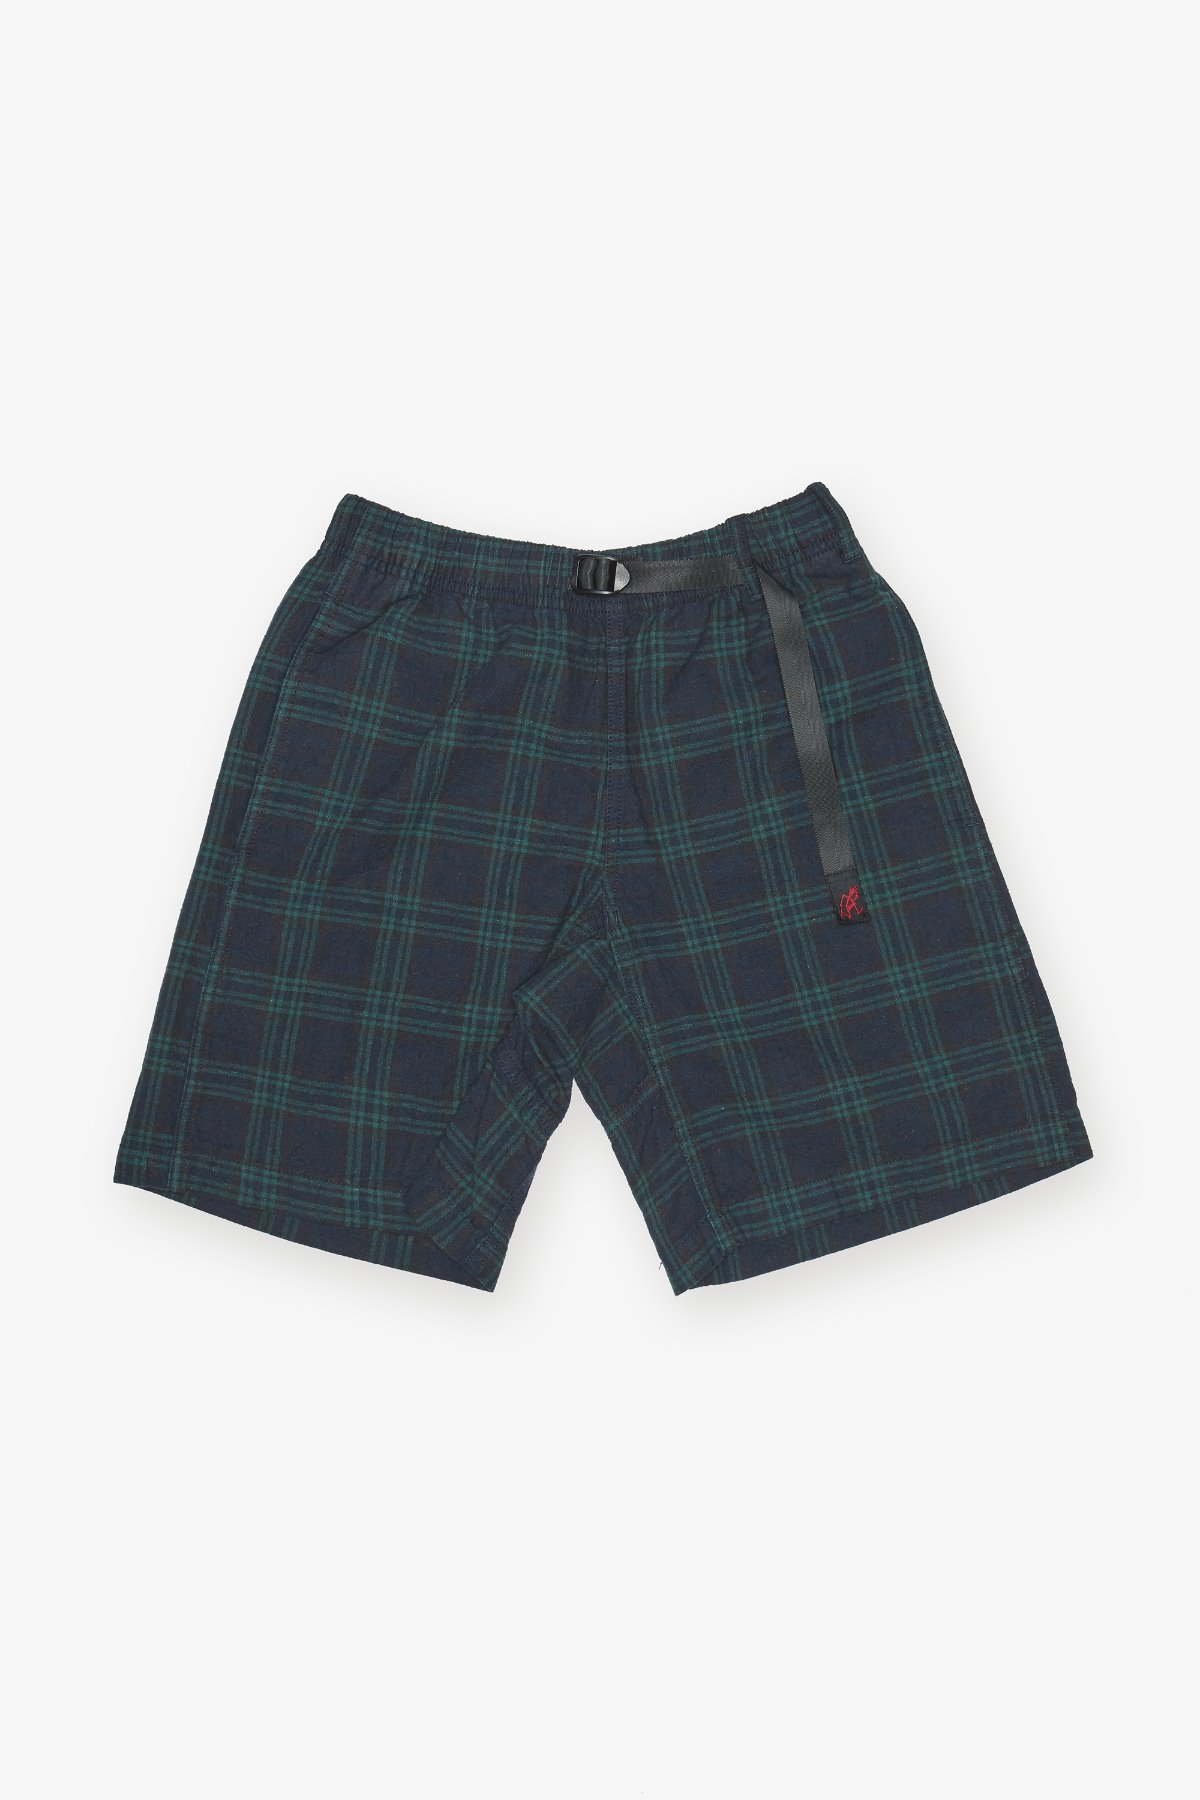 LINEN COTTON WS G-SHORTS BLACK WATCH